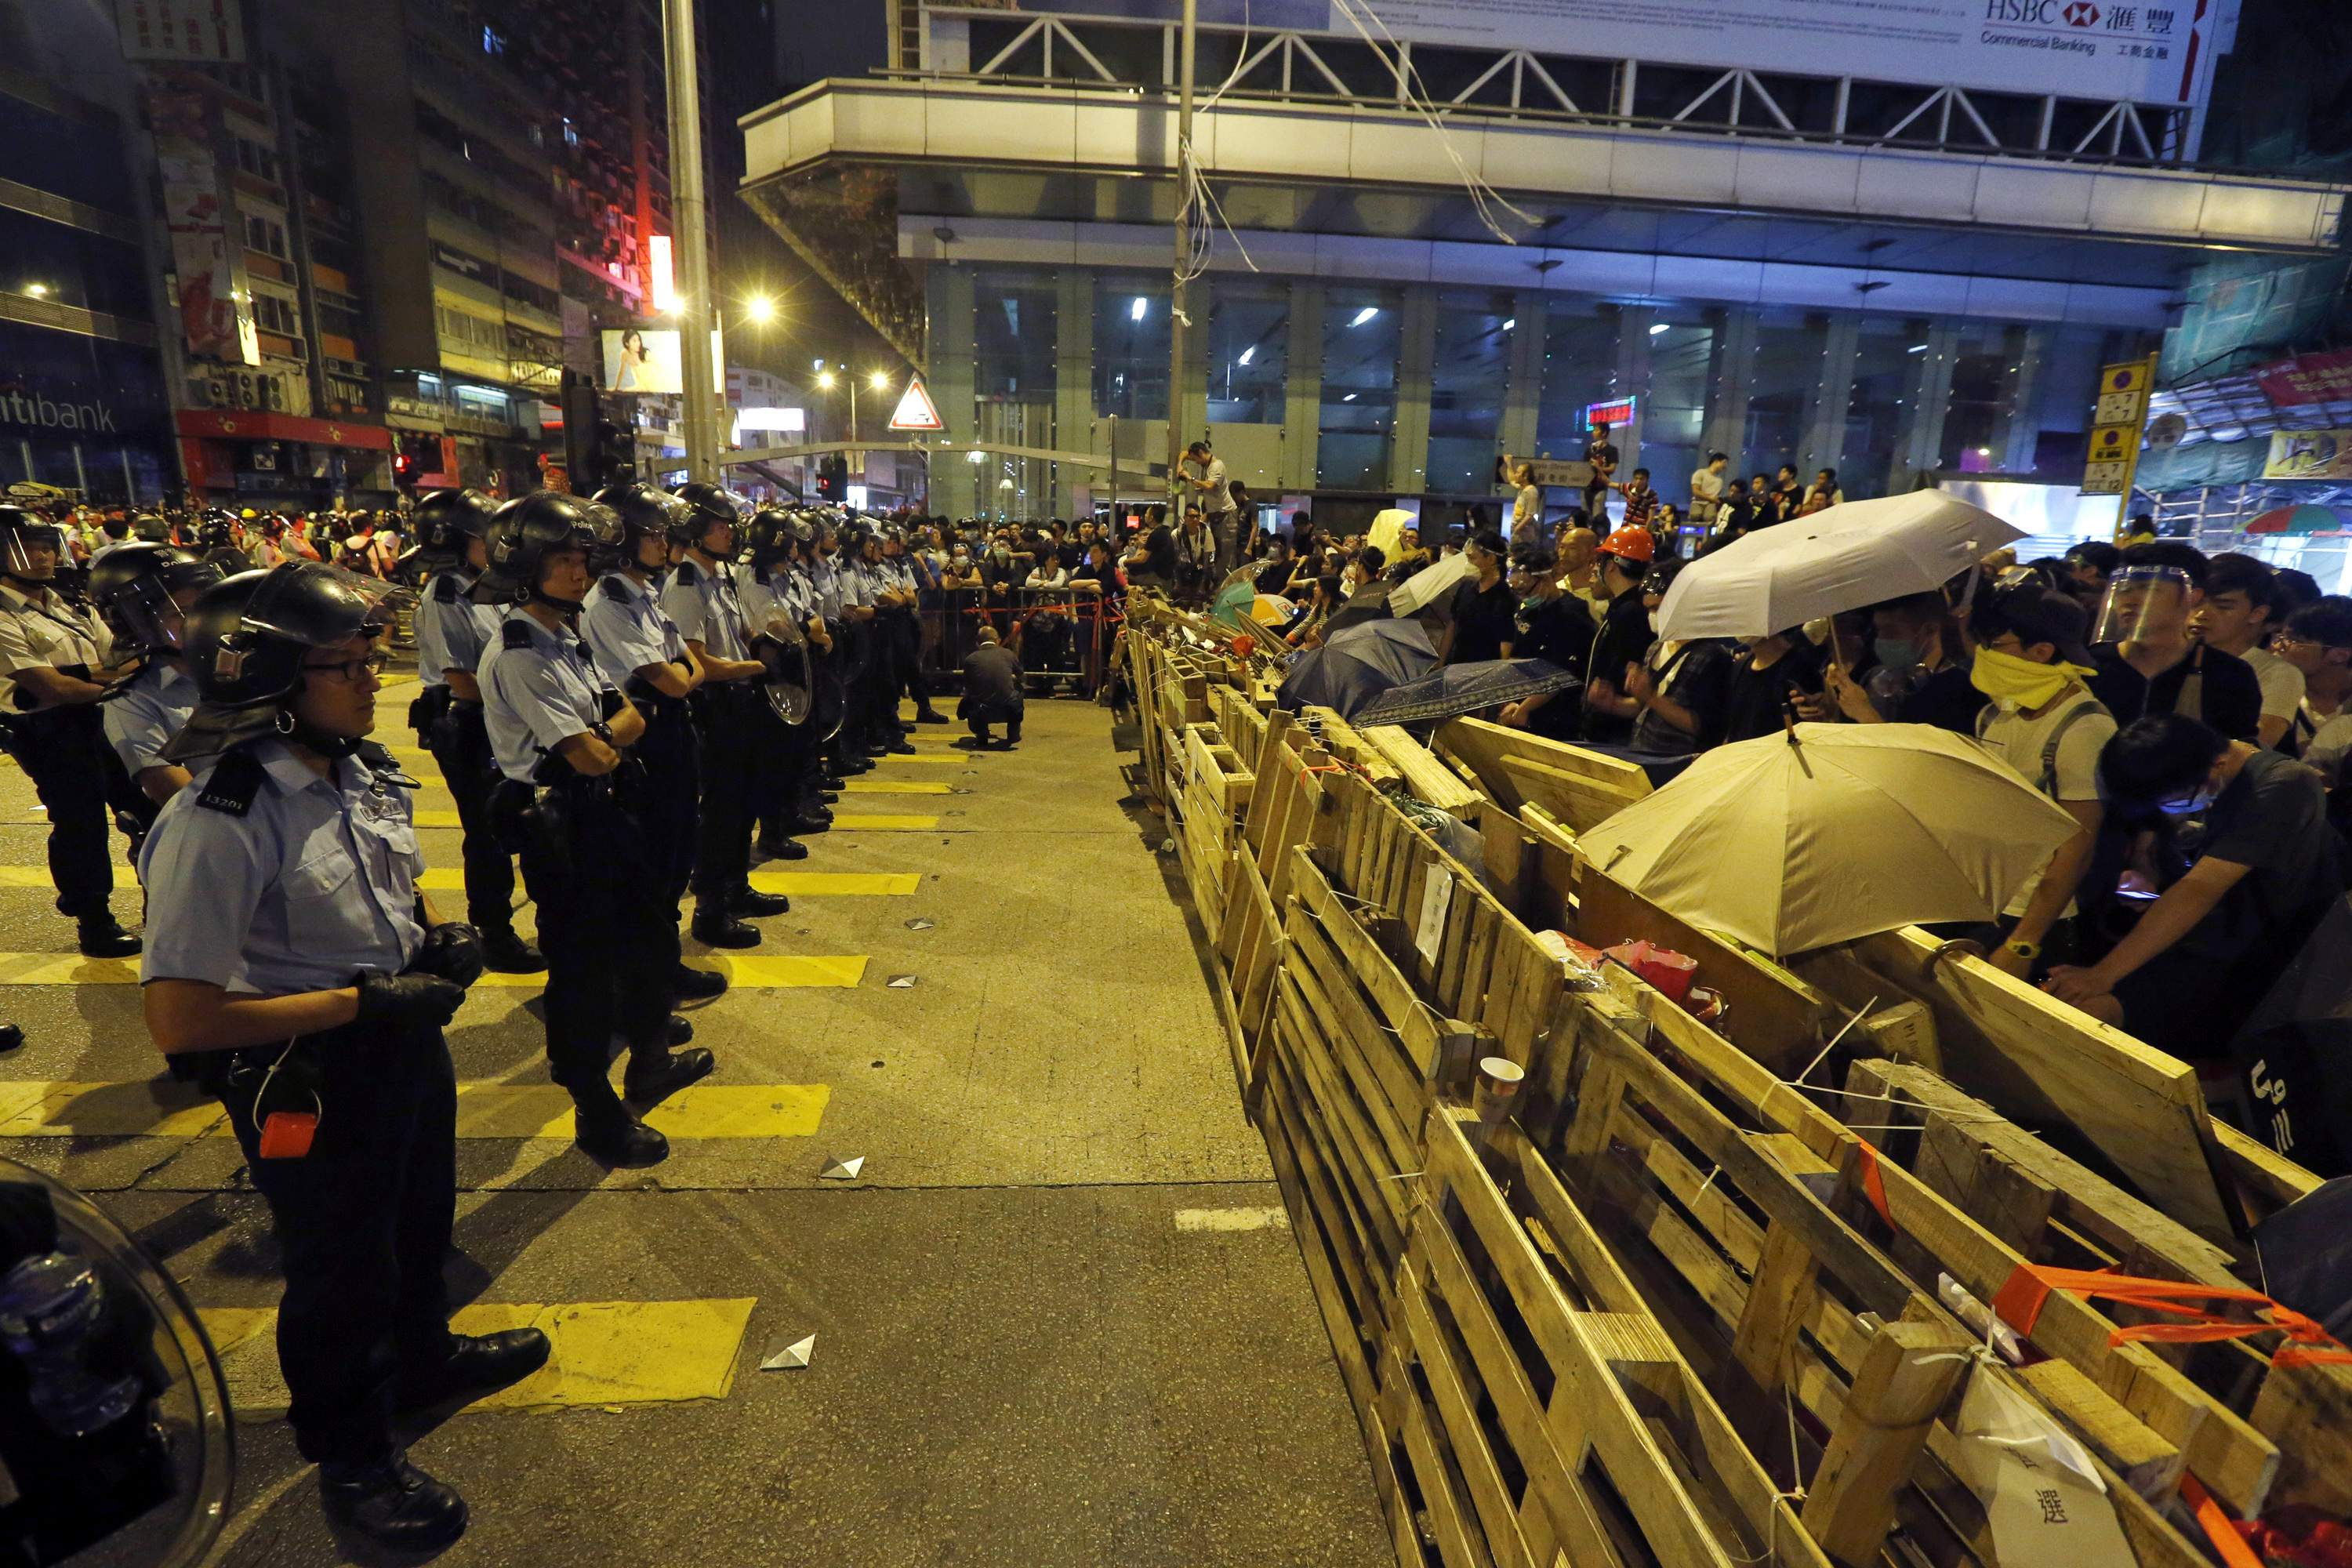 Clashes at Hong Kong protest site